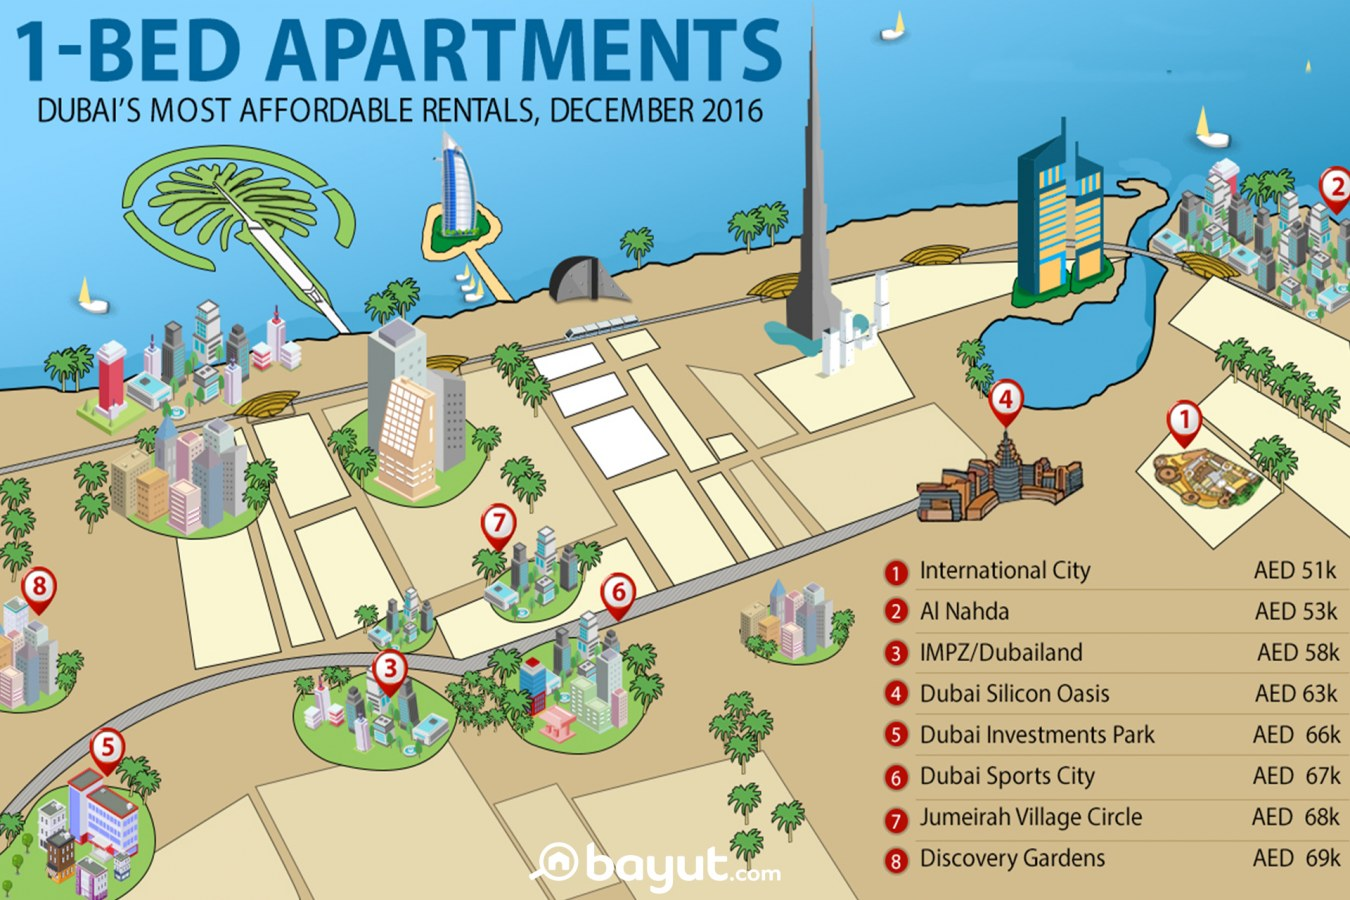 Infographic: Cheapest areas to rent 1-bed rental apartments in Dubai